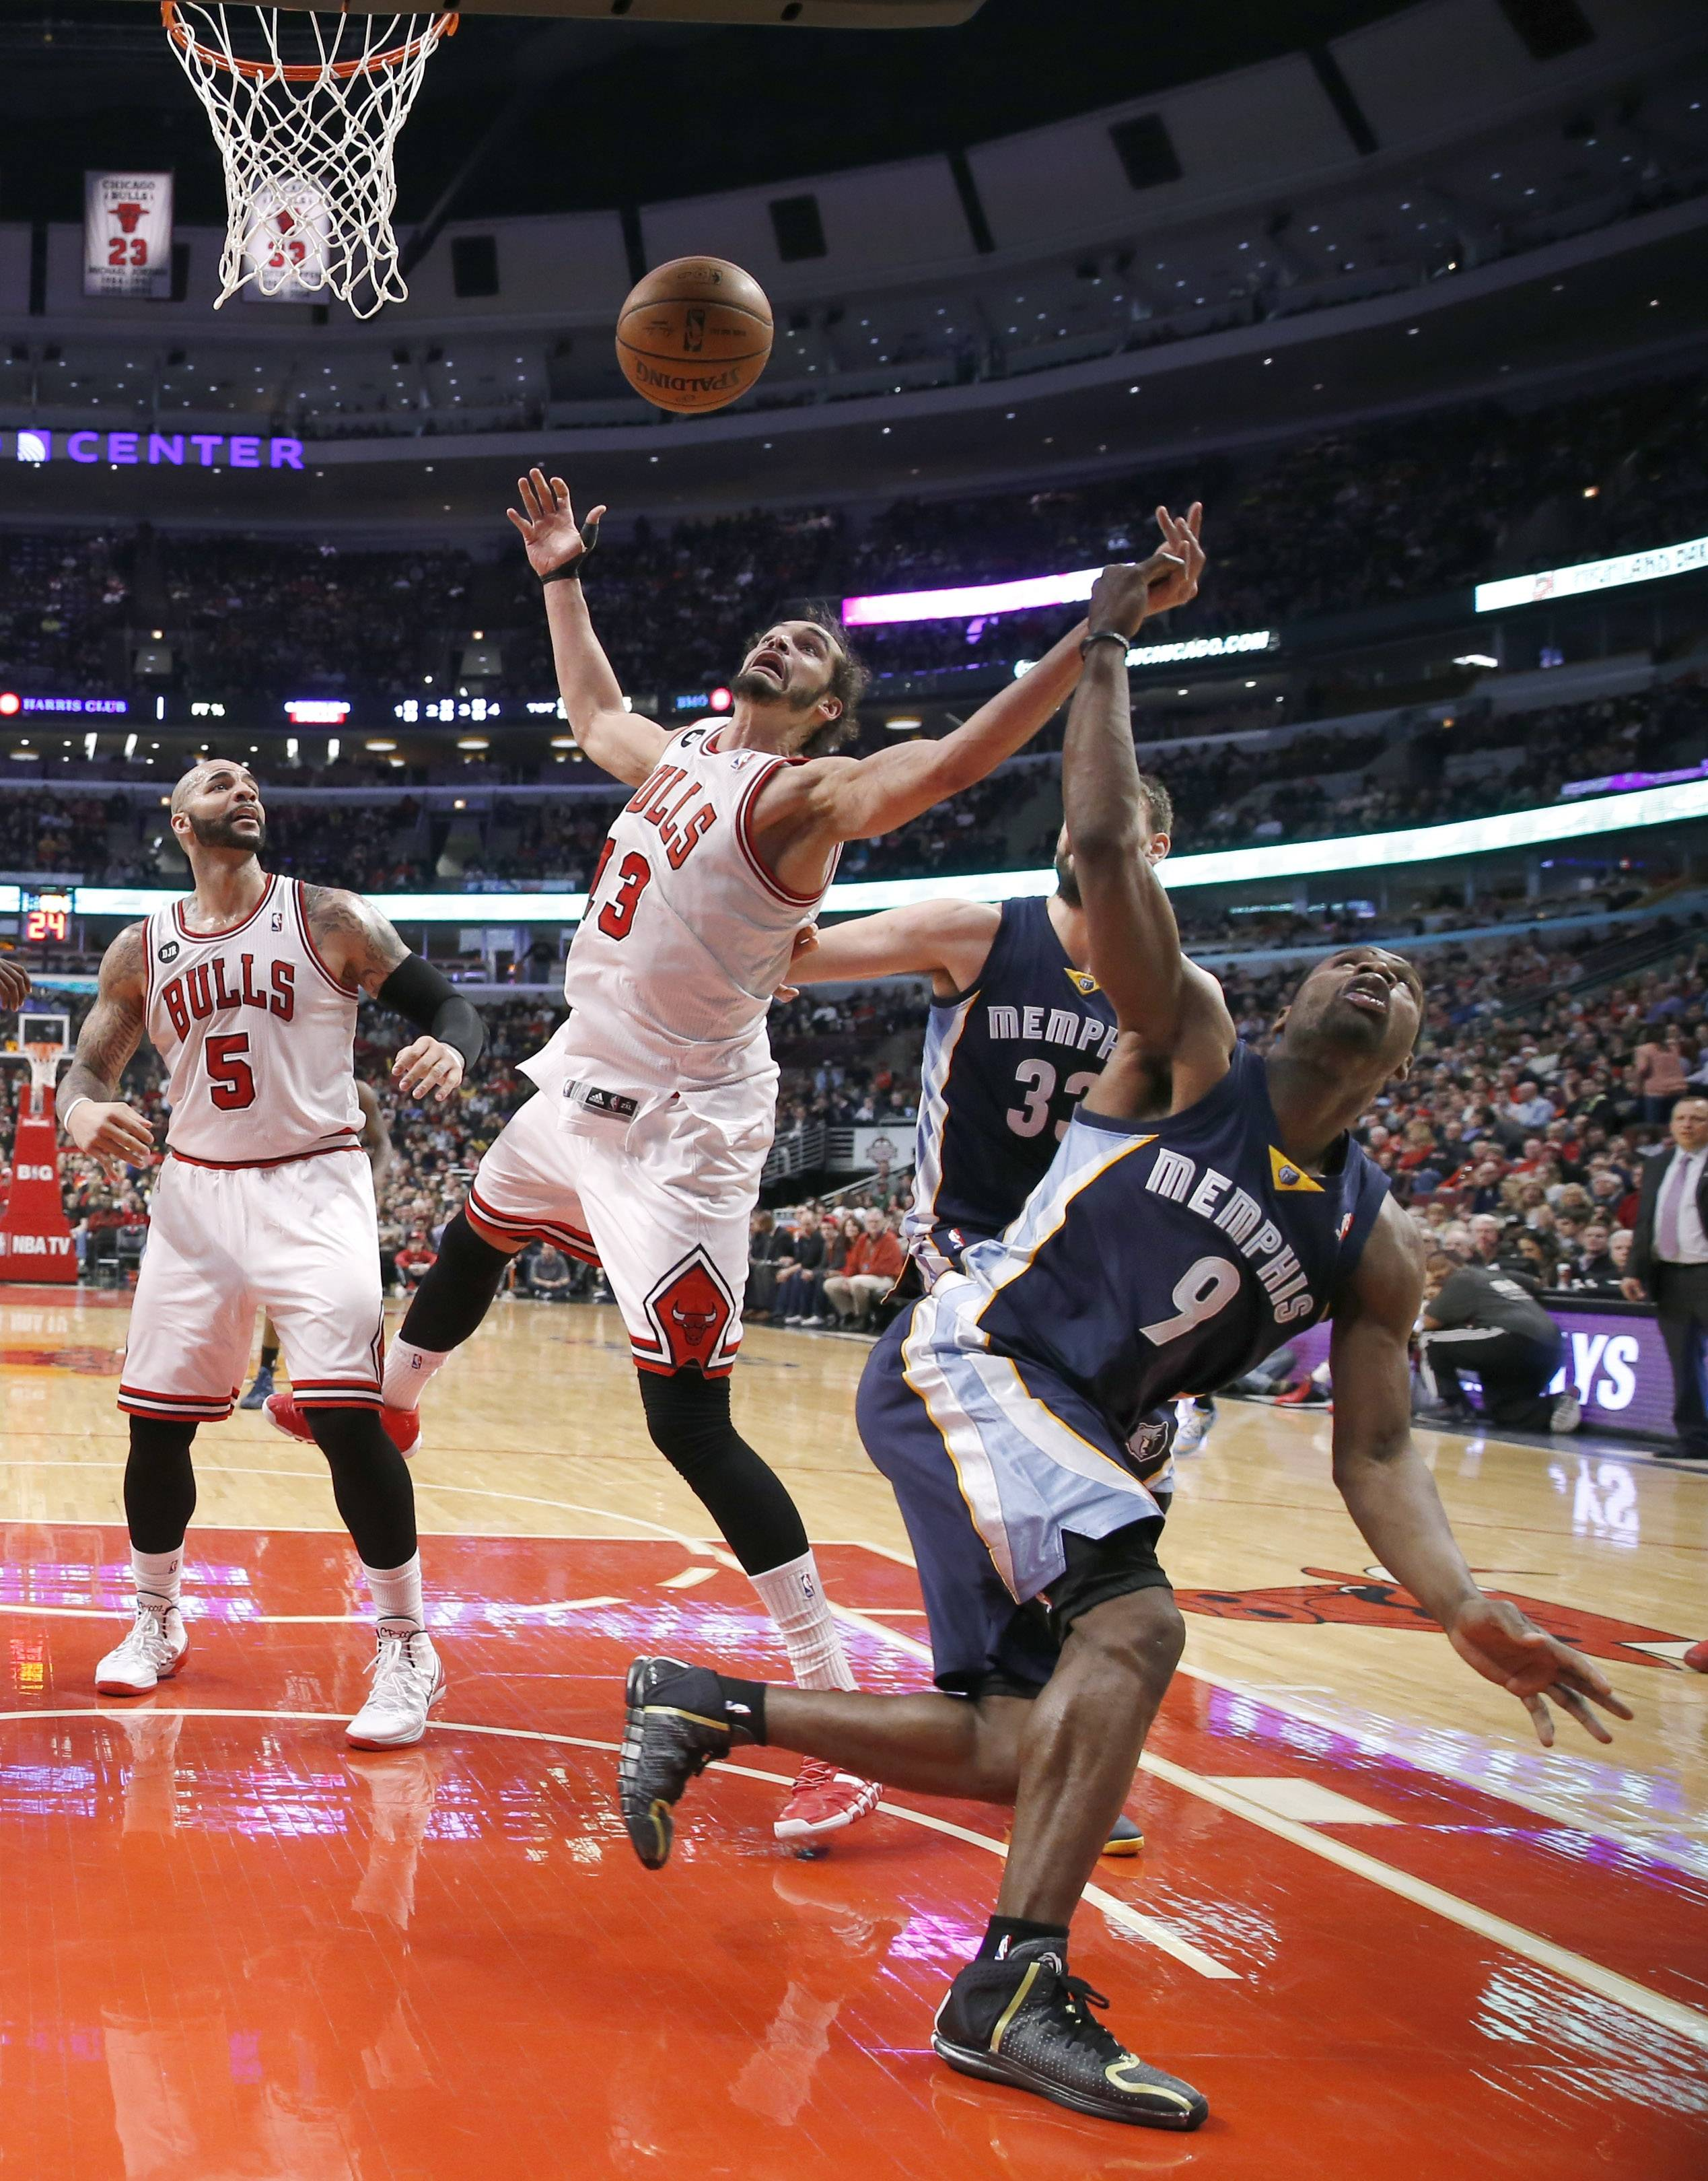 The Bulls' Joakim Noah battles the Grizzlies' Tony Allen for a rebound Friday at the United Center.